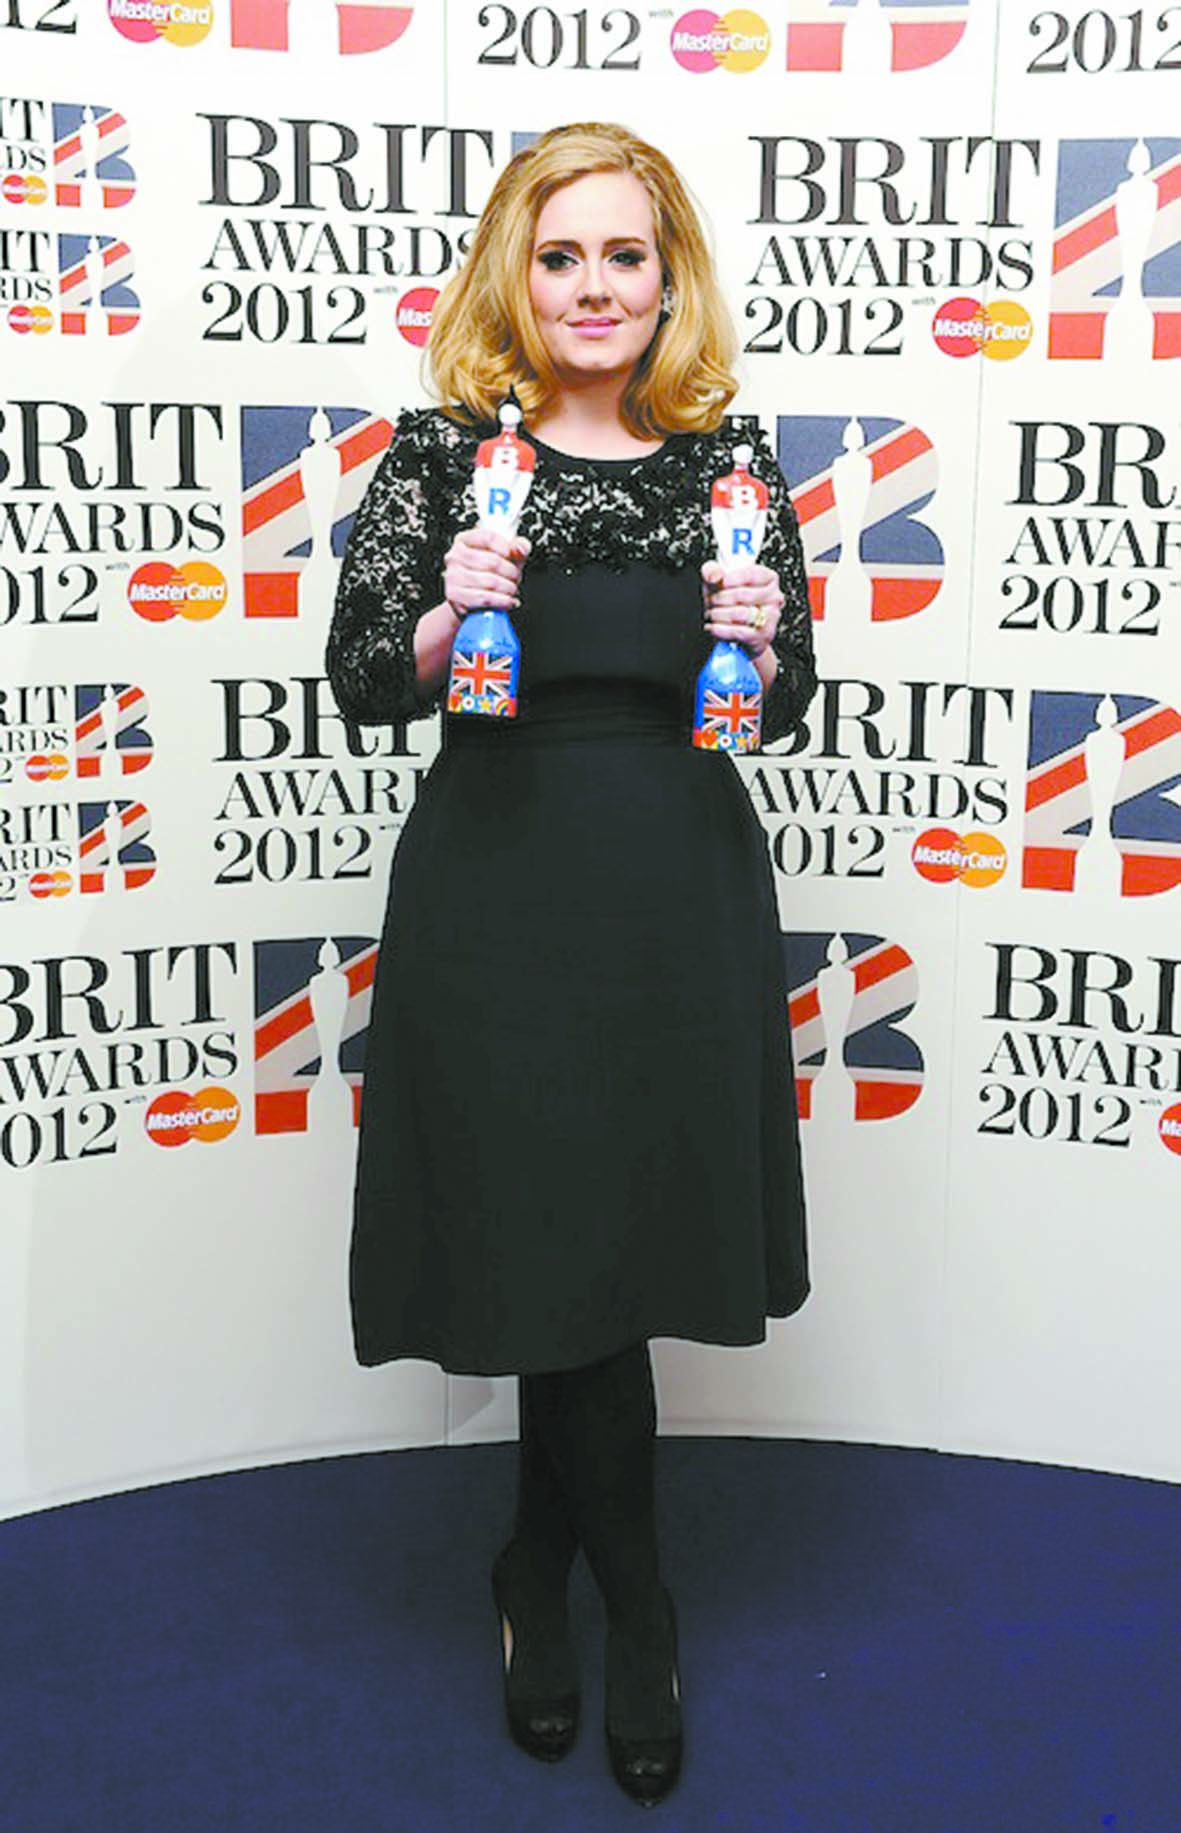 Adele triomphe aux Brit Awards